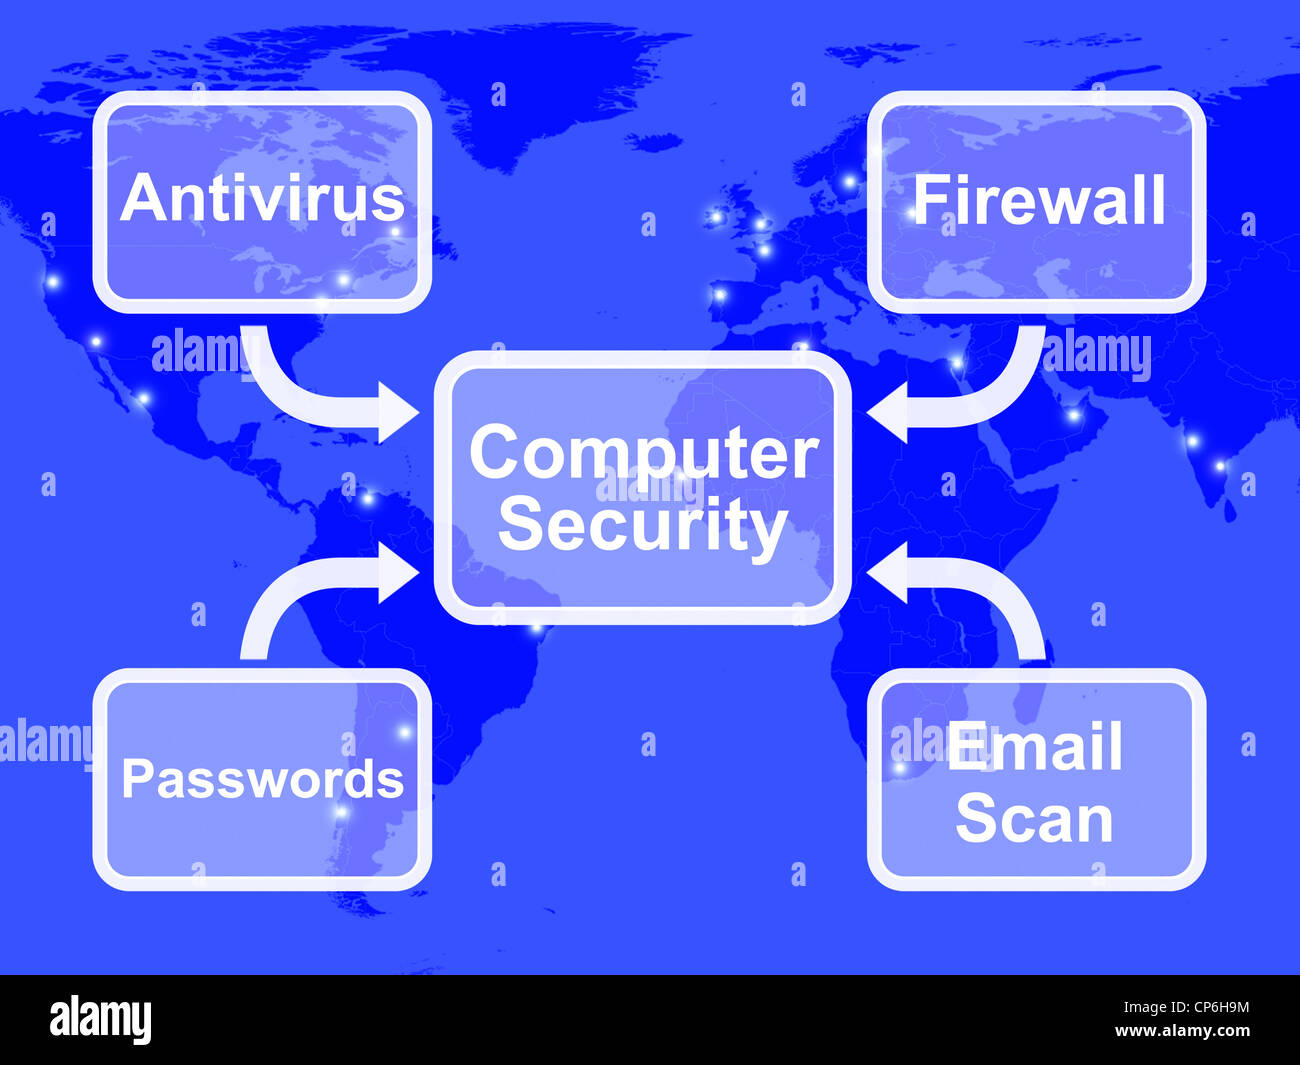 Computer Security Diagram Showing Laptop Internet Safety Stock Photo